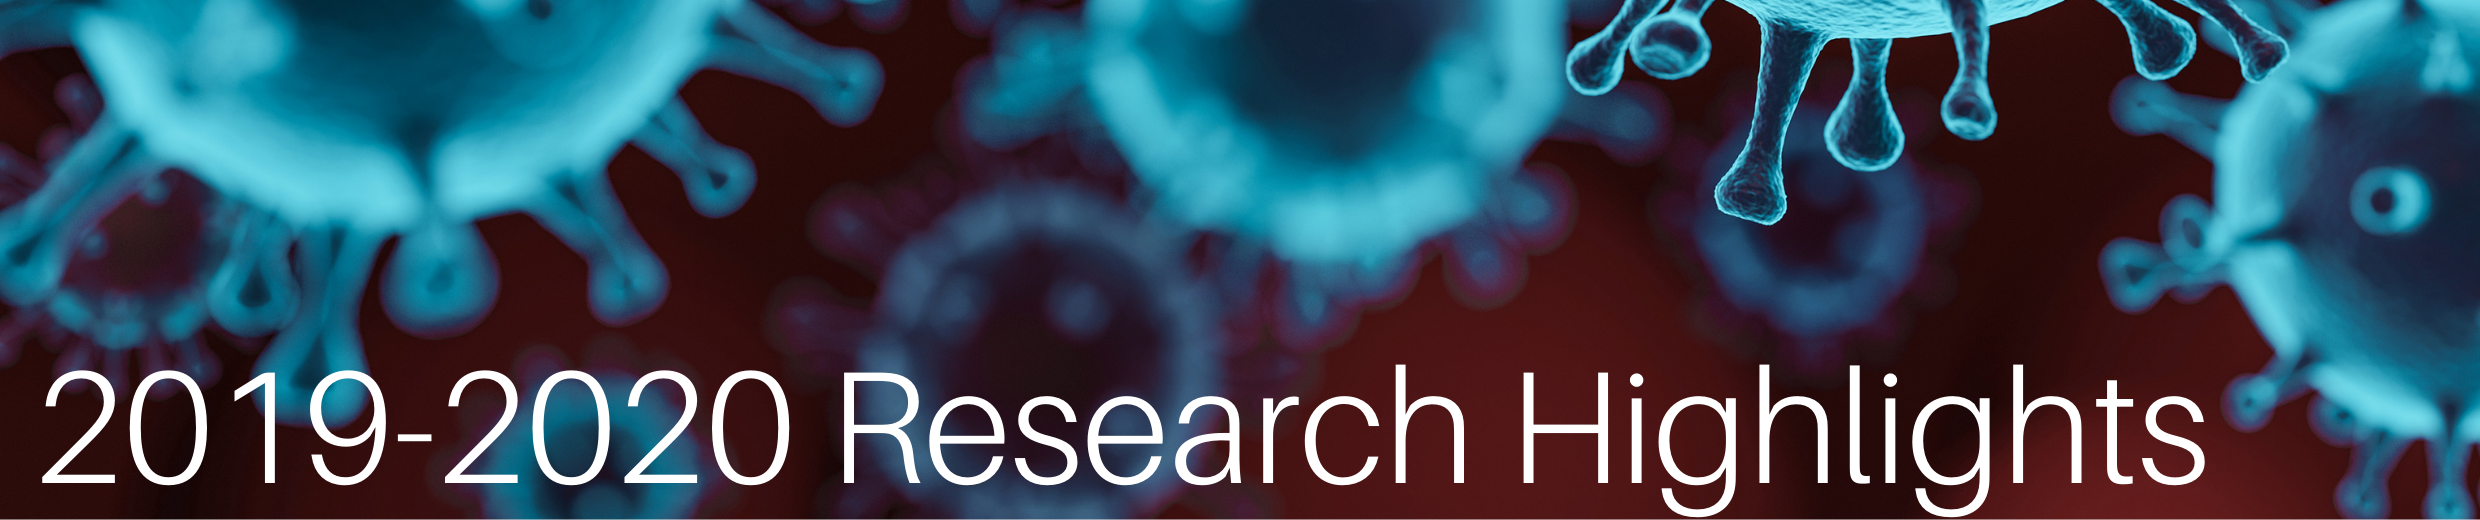 2019-2020 Research Highlights